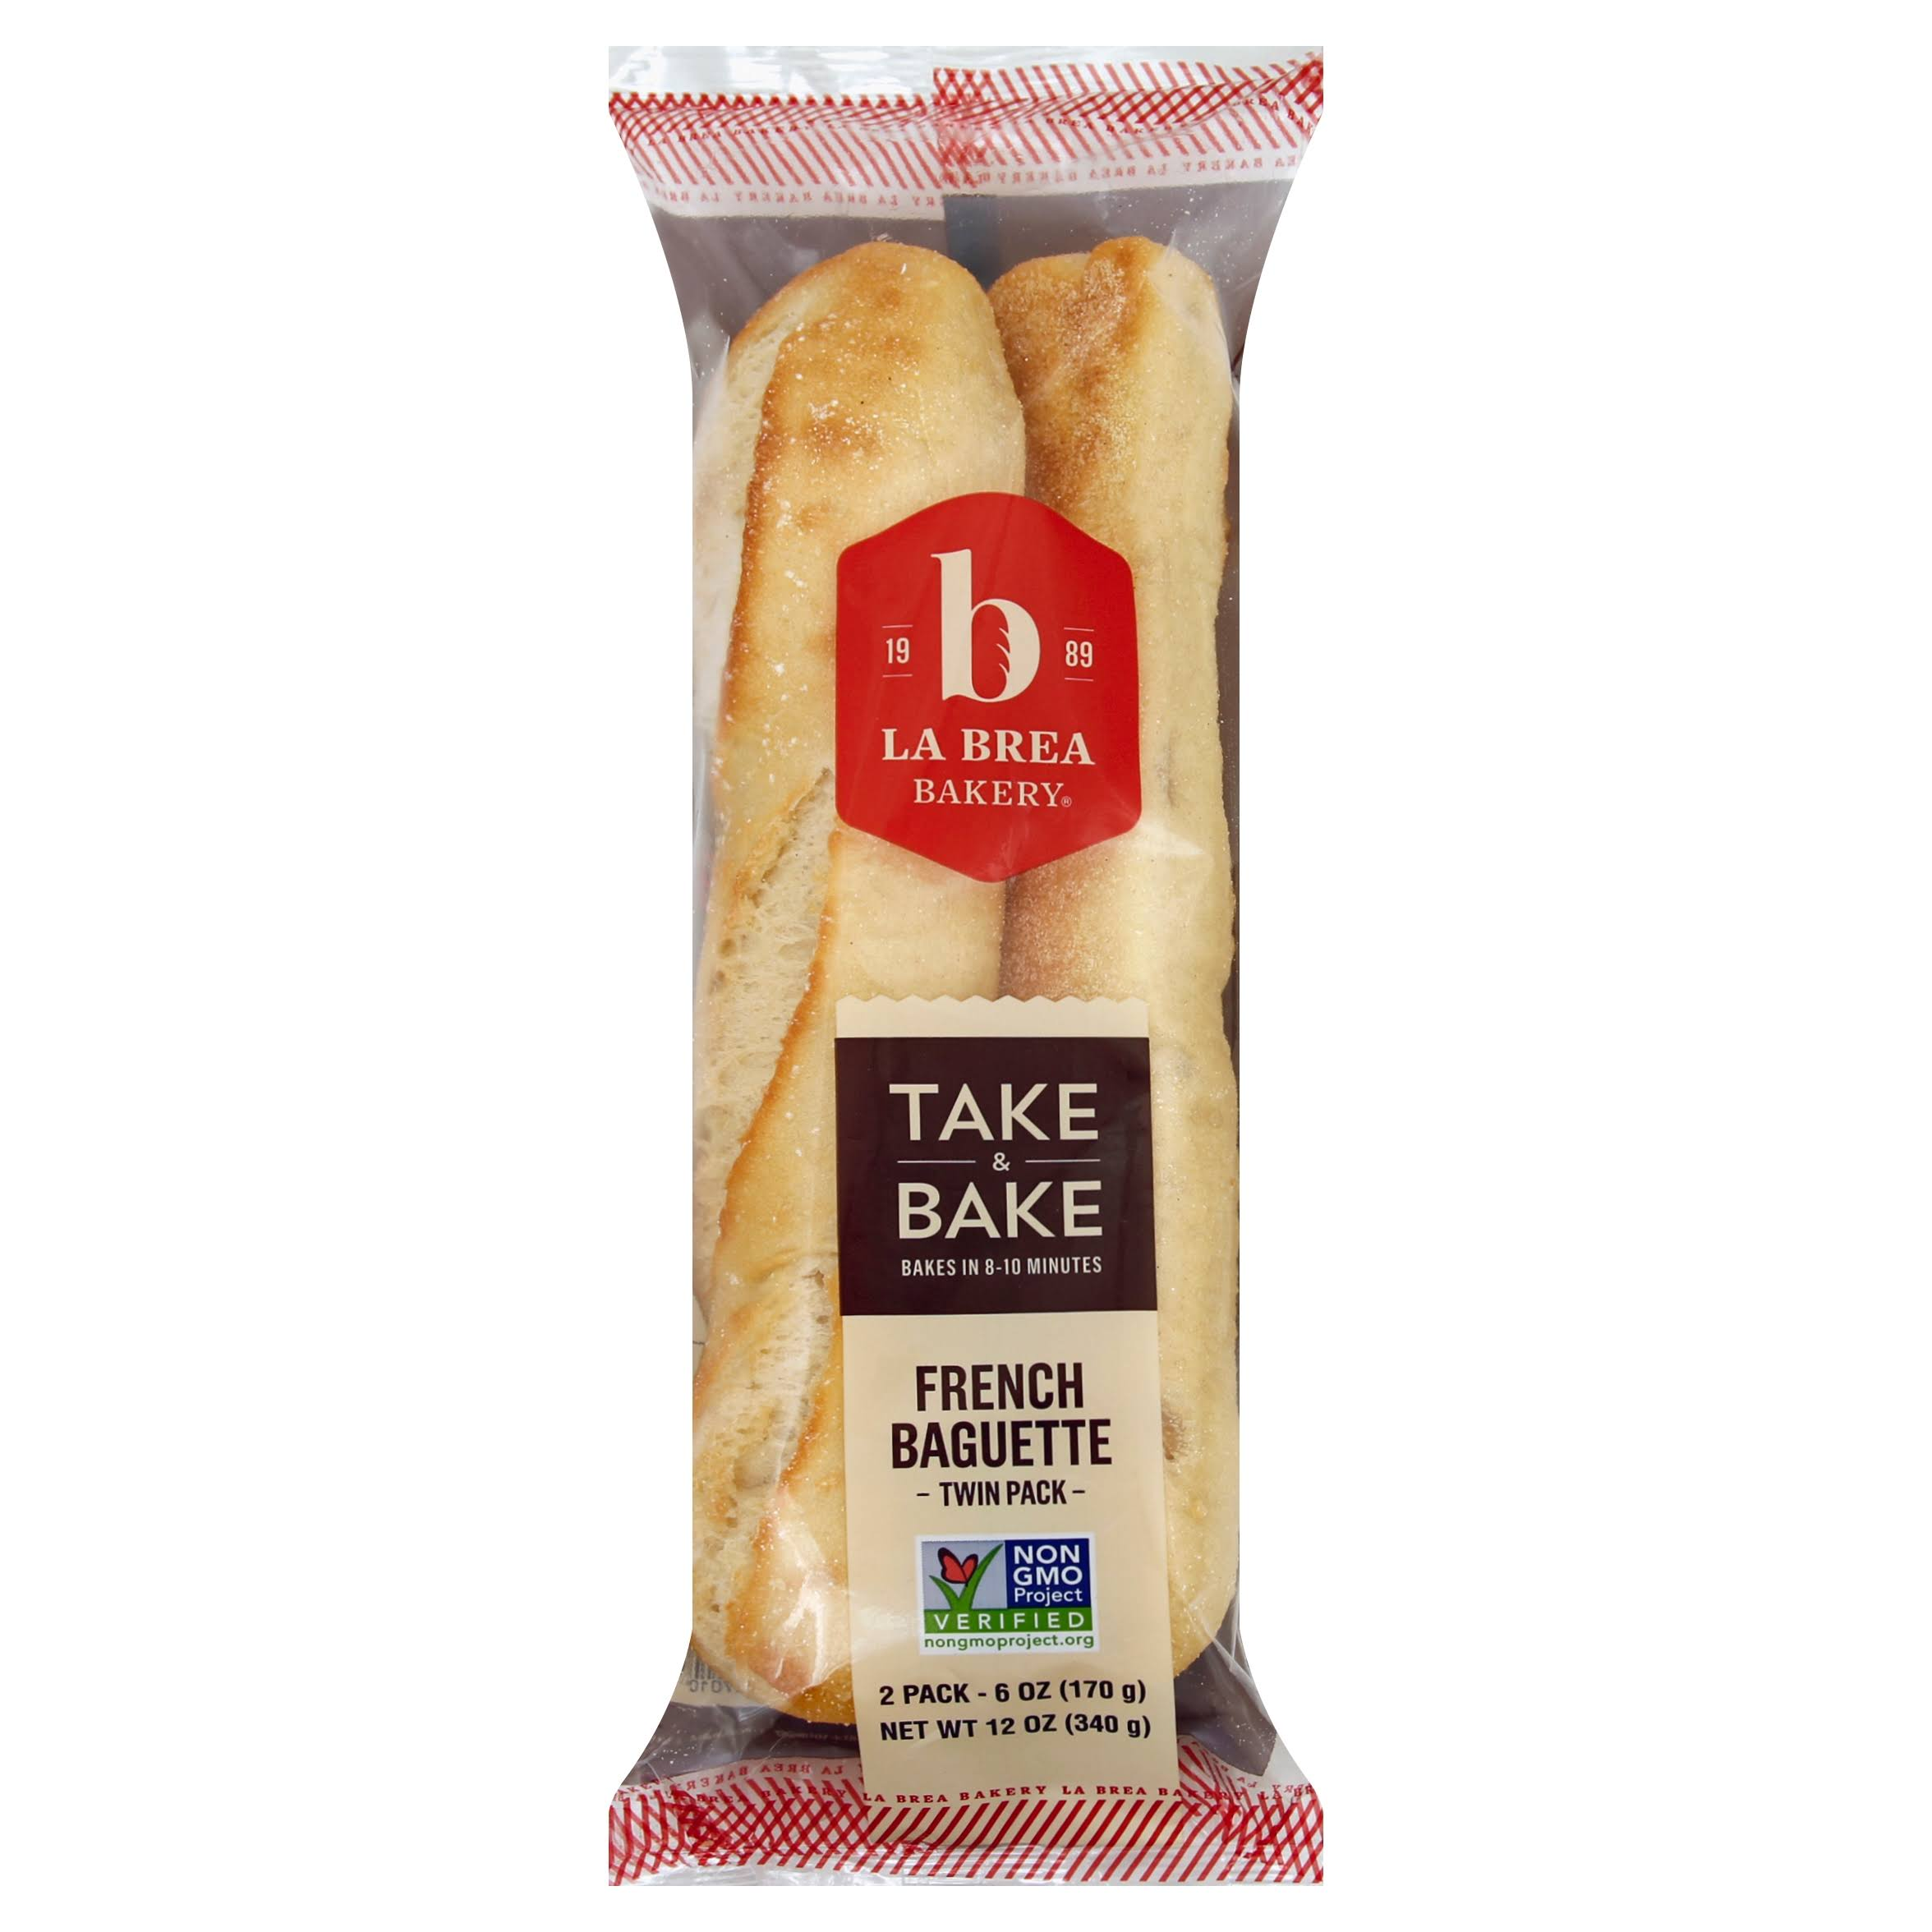 La Brea Bakery French Baguette